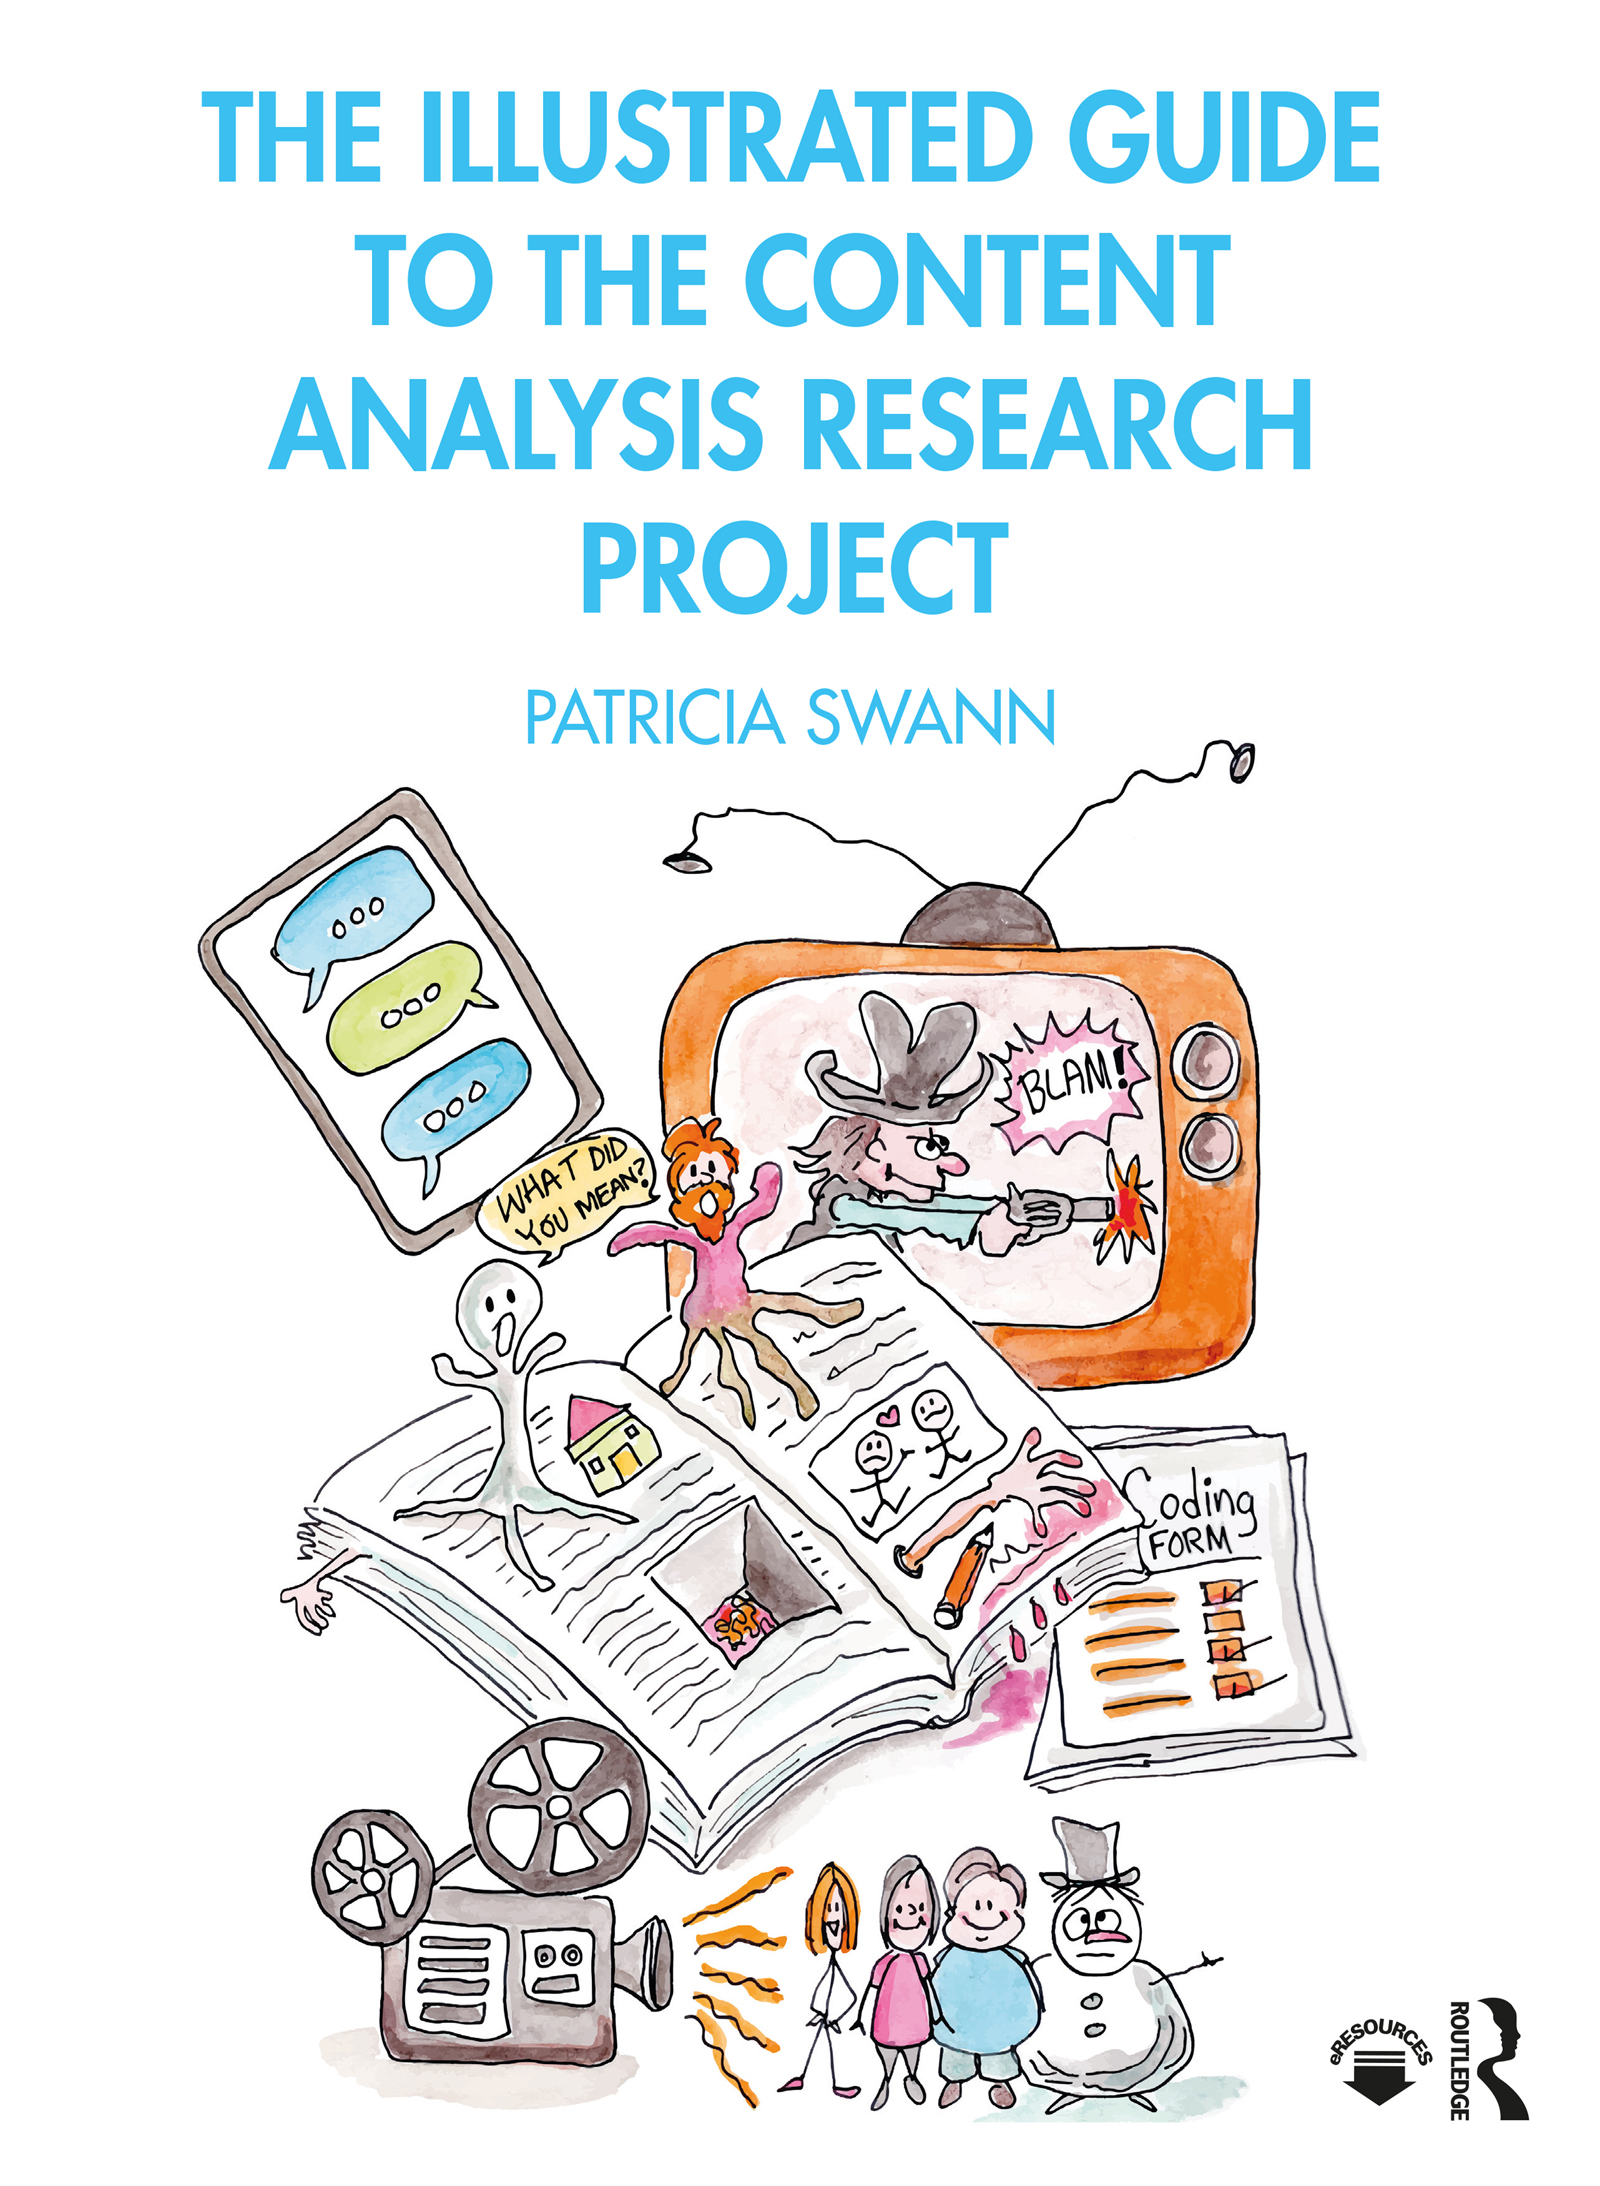 Writing the Hypothesis and Research Question